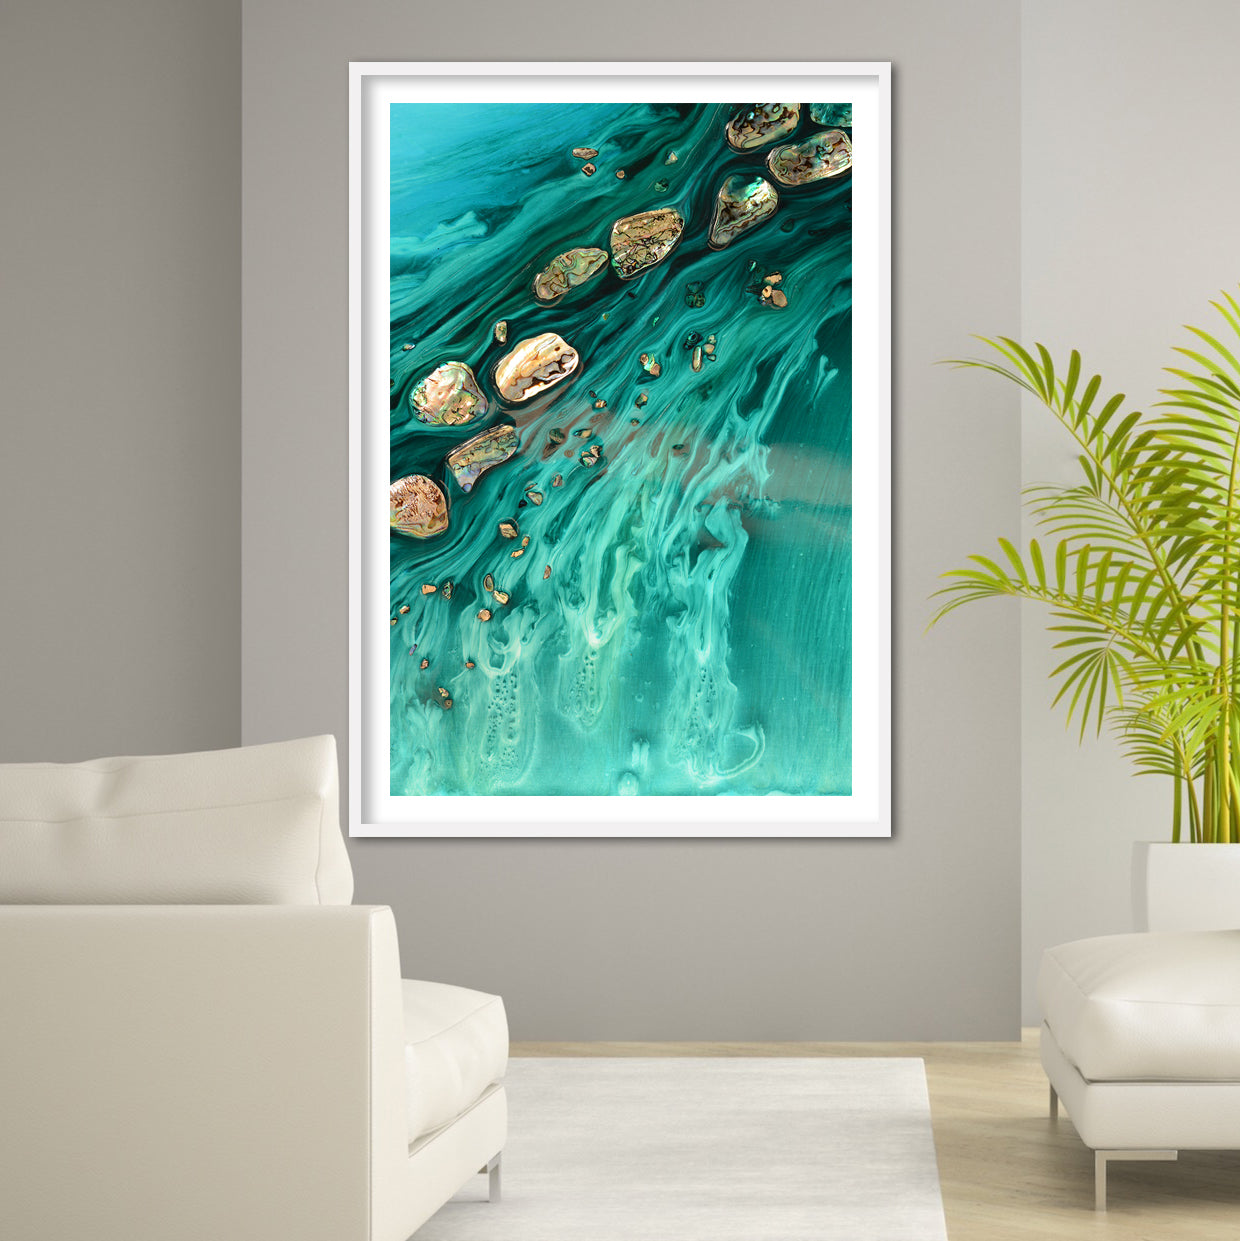 Abstract Ocean Artwork. Rise Above Seashells 1. Art Print. Antuanelle 3 Limited Edition Print